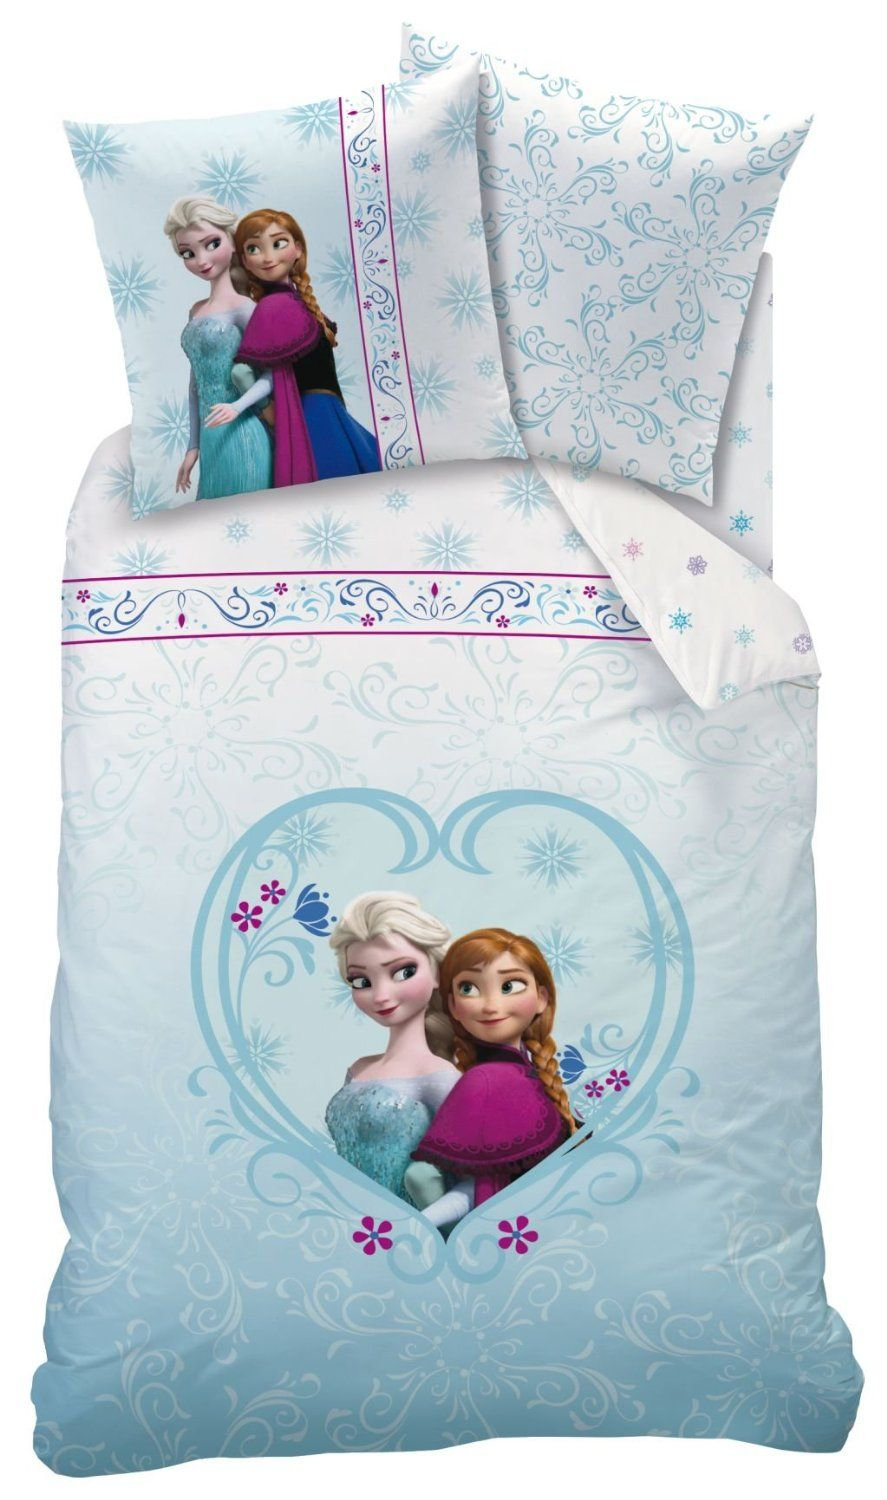 Cti 42936 Bettwäsche Disney Frozeneiskönigin 135x20080x80cm 100